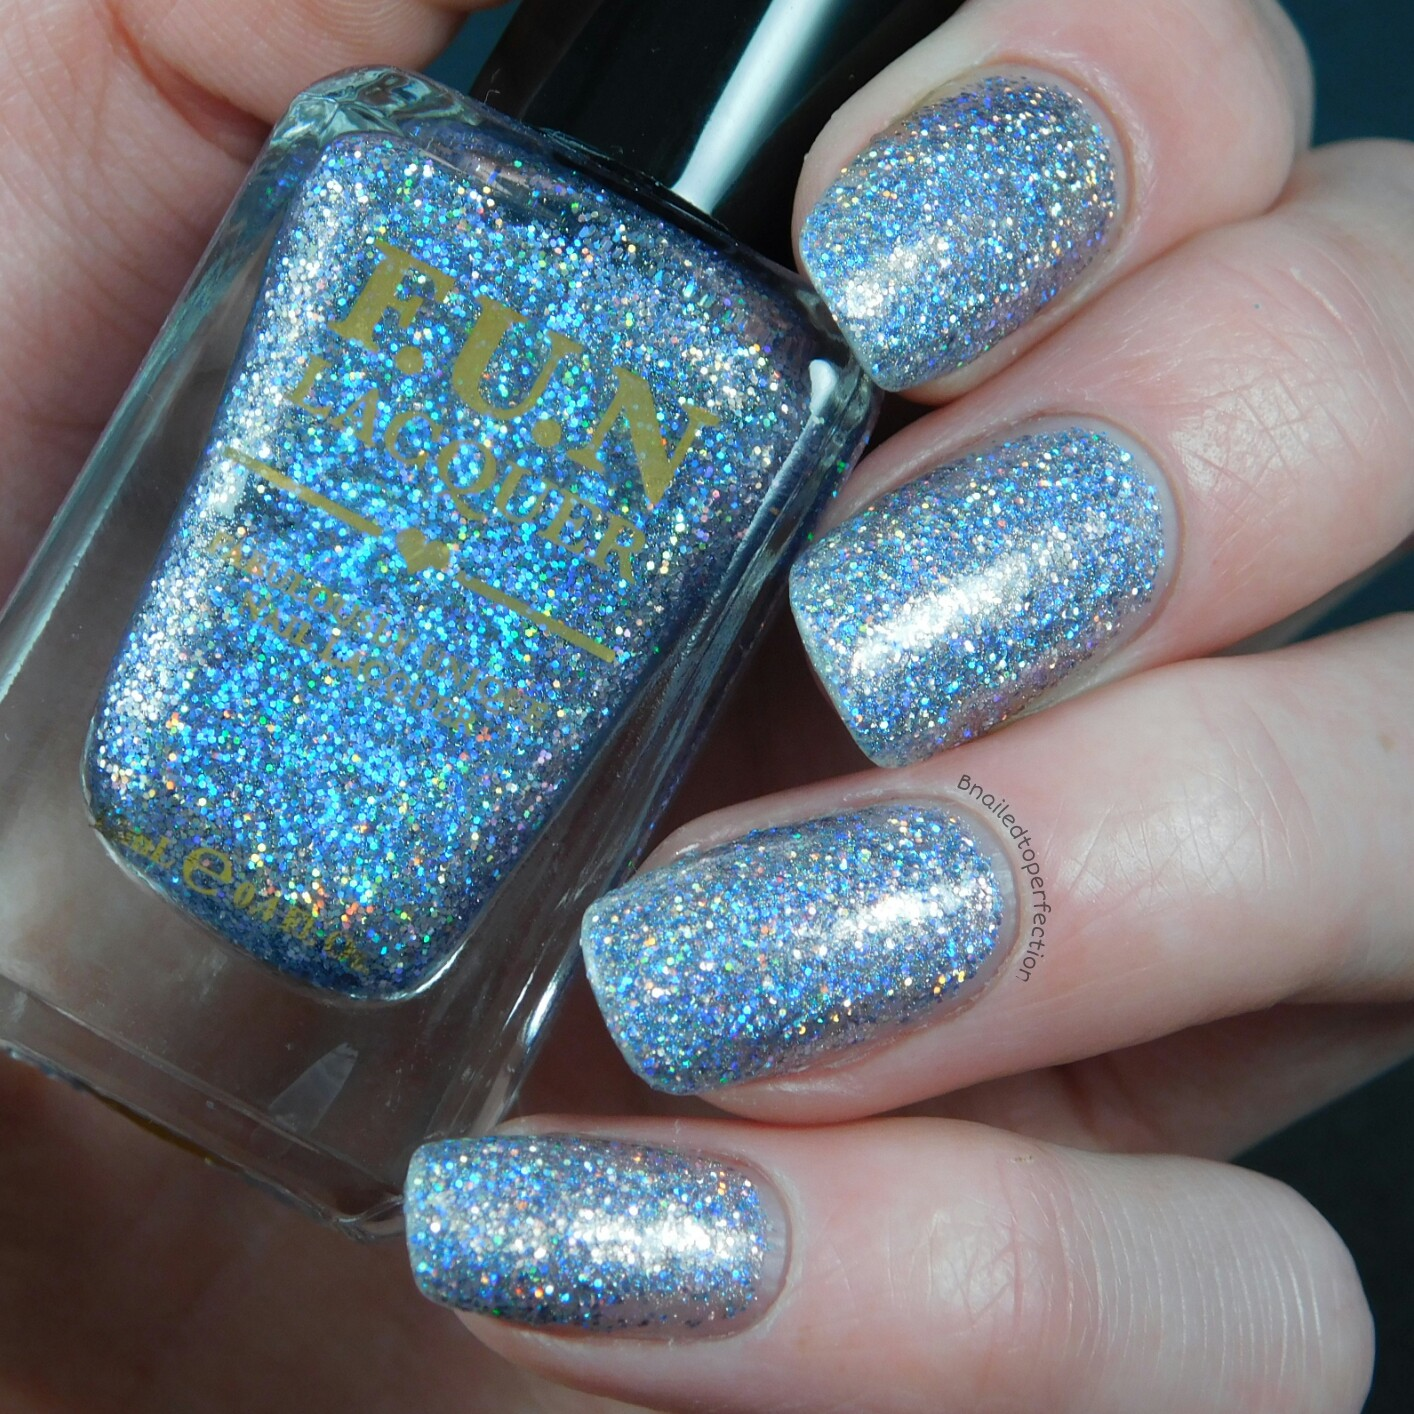 B Nailed To Perfection: F.U.N Lacquer The Art Of Sparkle (H) Swatches